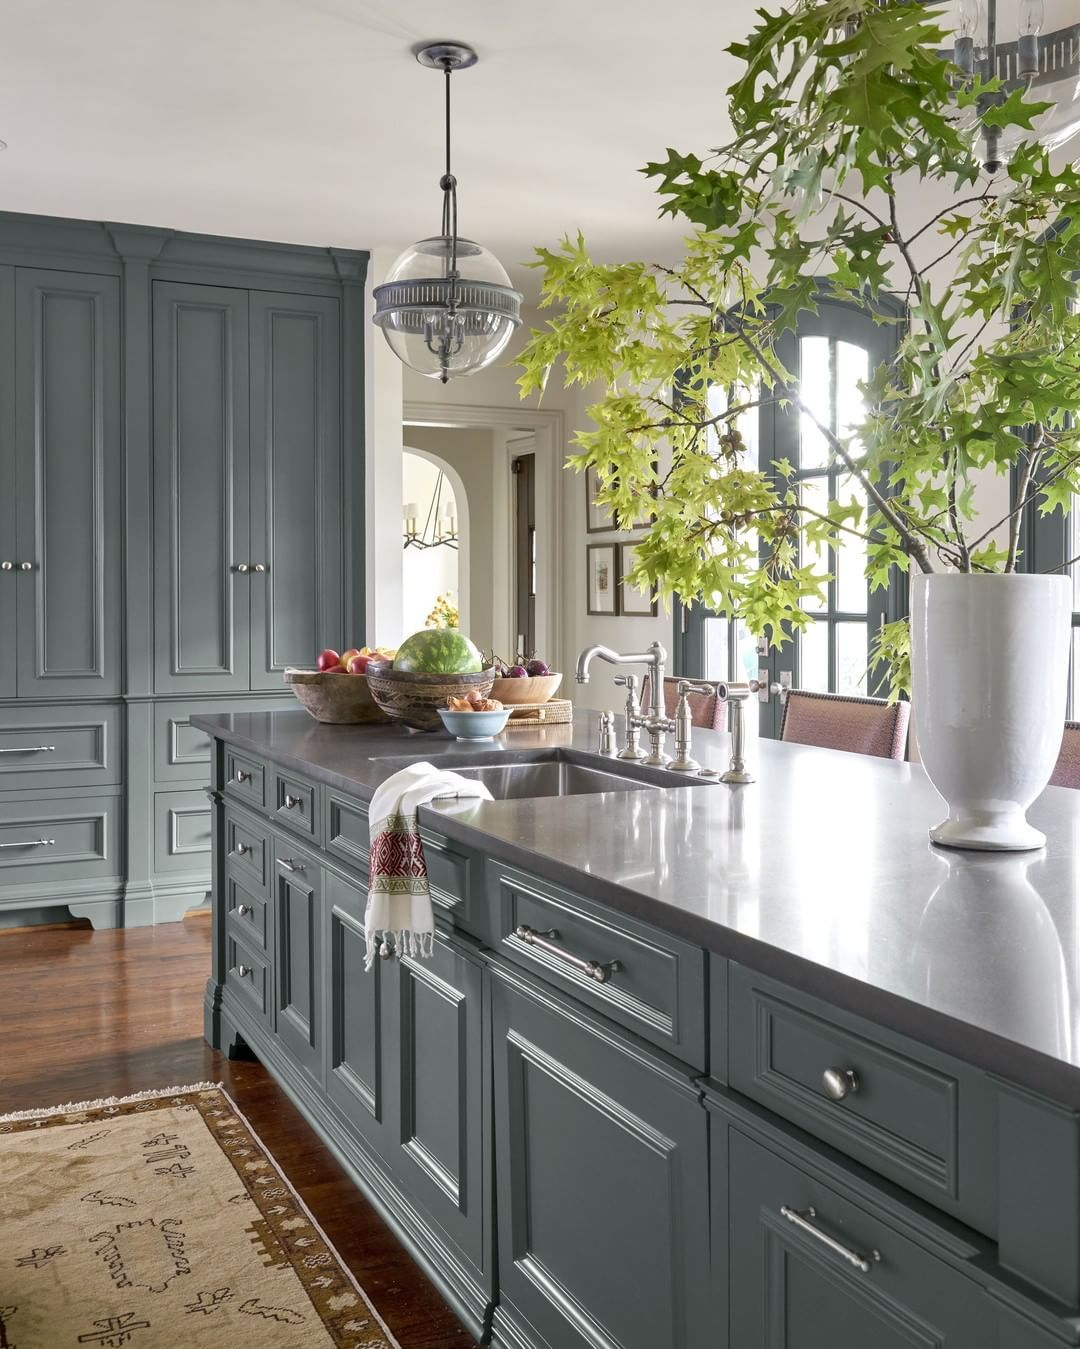 All About Cabinets And Countertops: Grey Kitchen Cabinets, Green Kitchen Cabinets, Blue